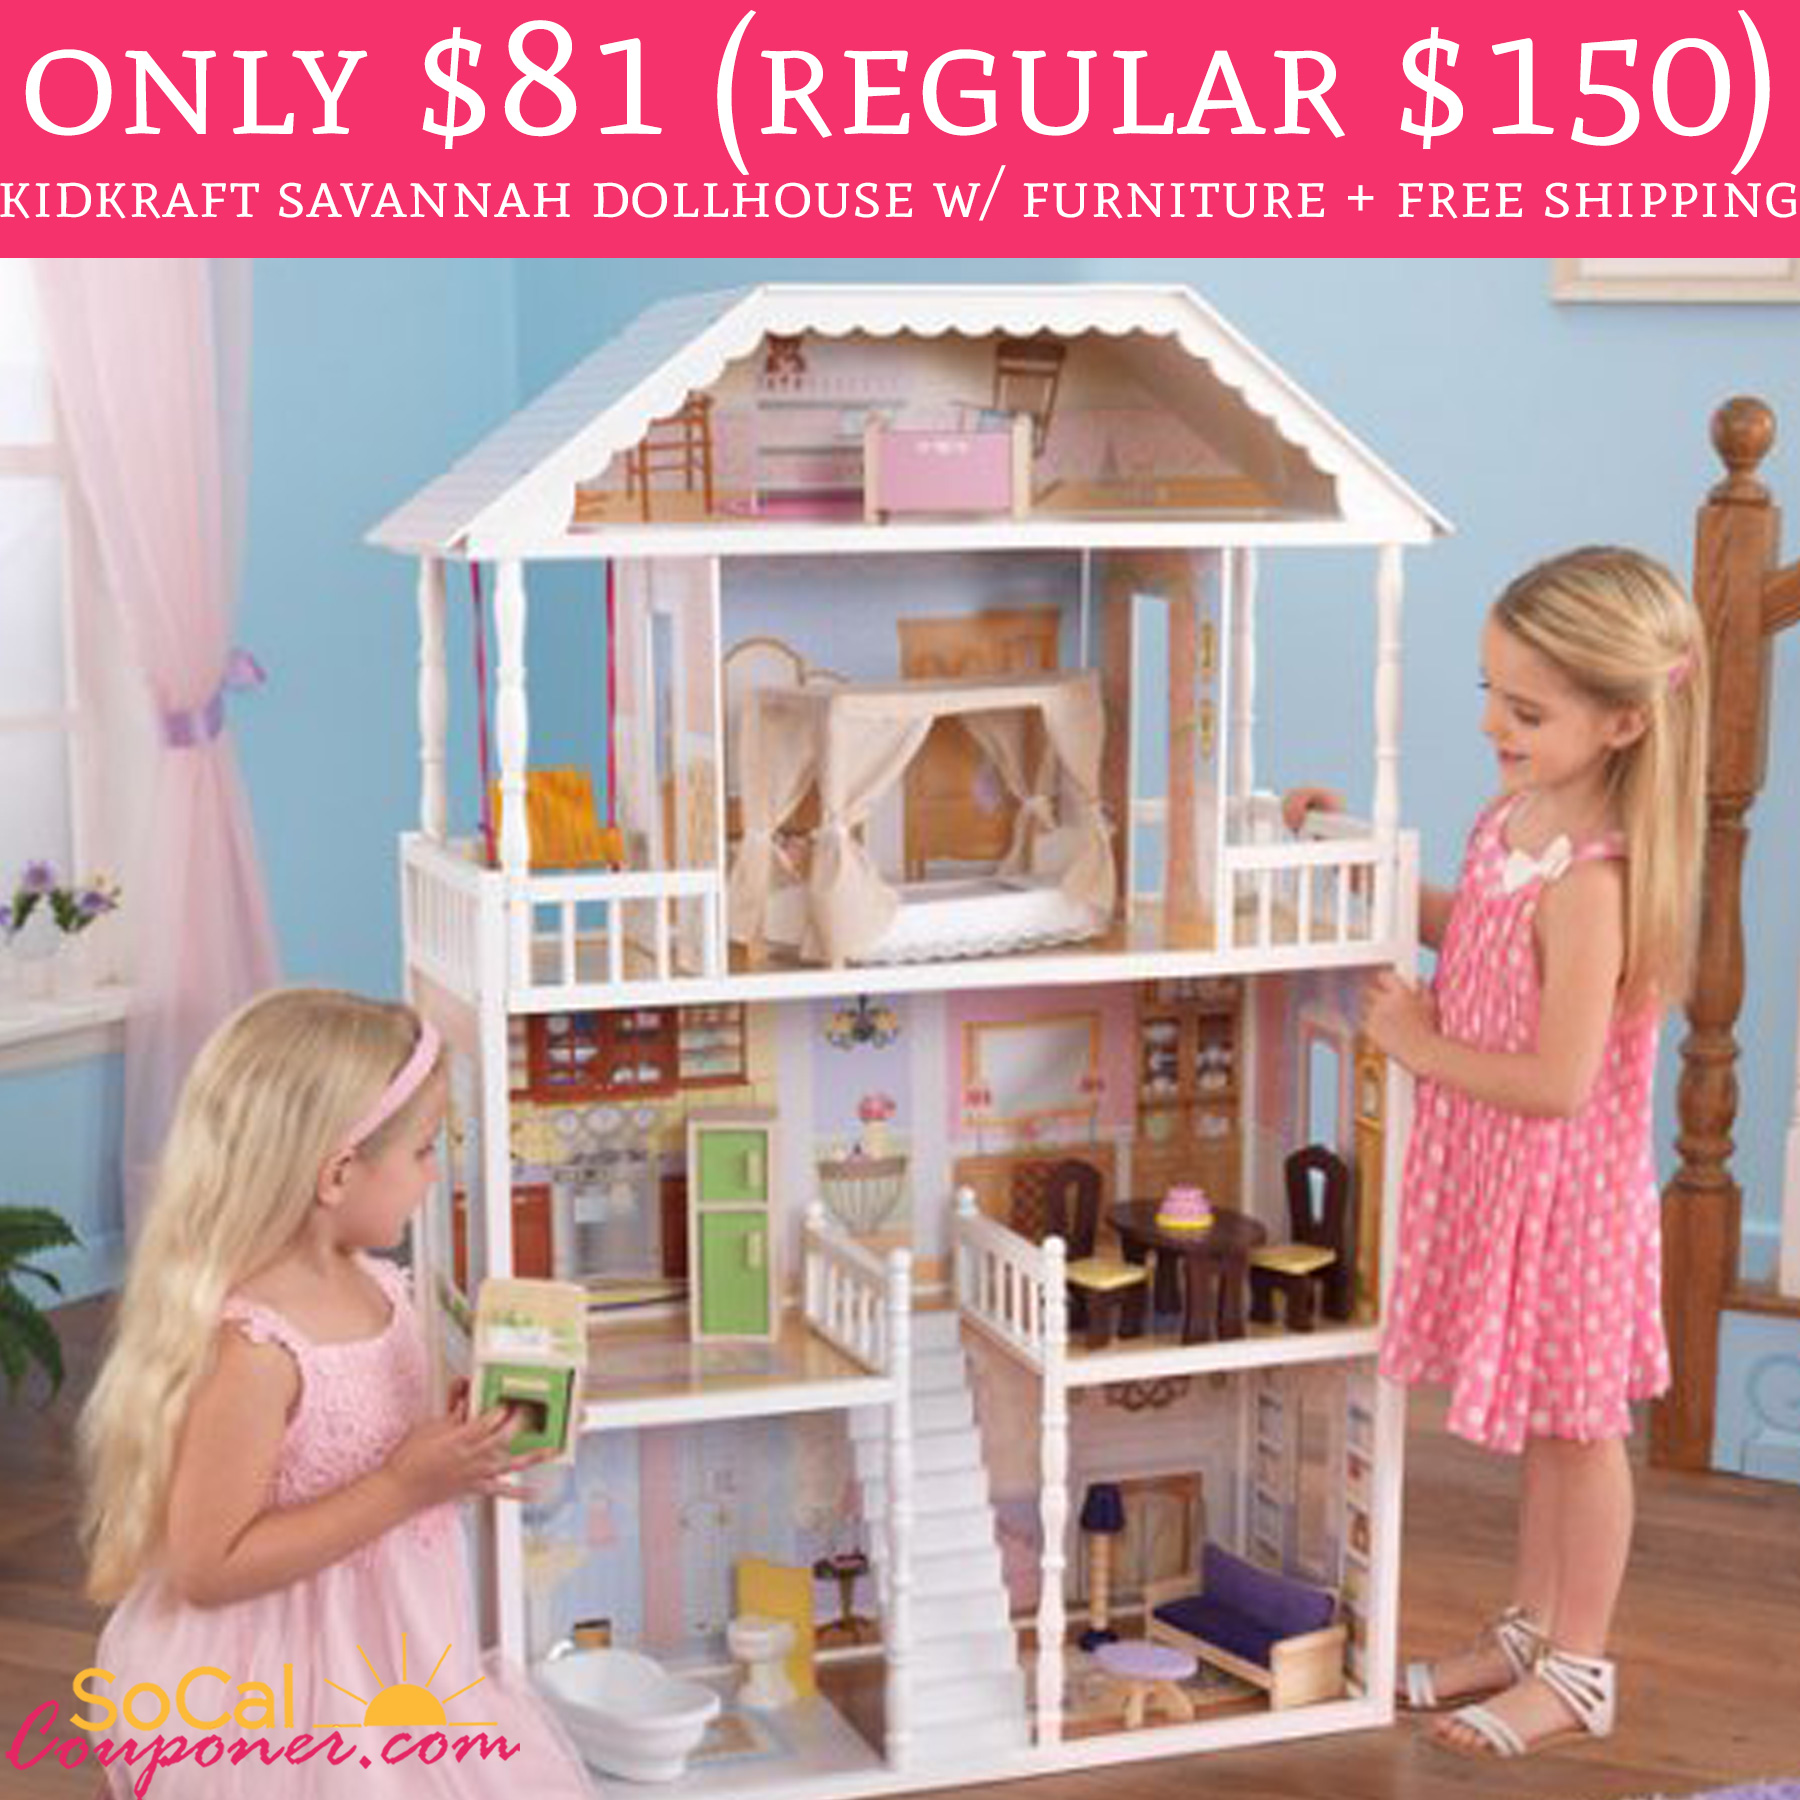 Free Shipping On Furniture: WOW! Only $81.20 KidKraft Savannah Dollhouse W/ Furniture